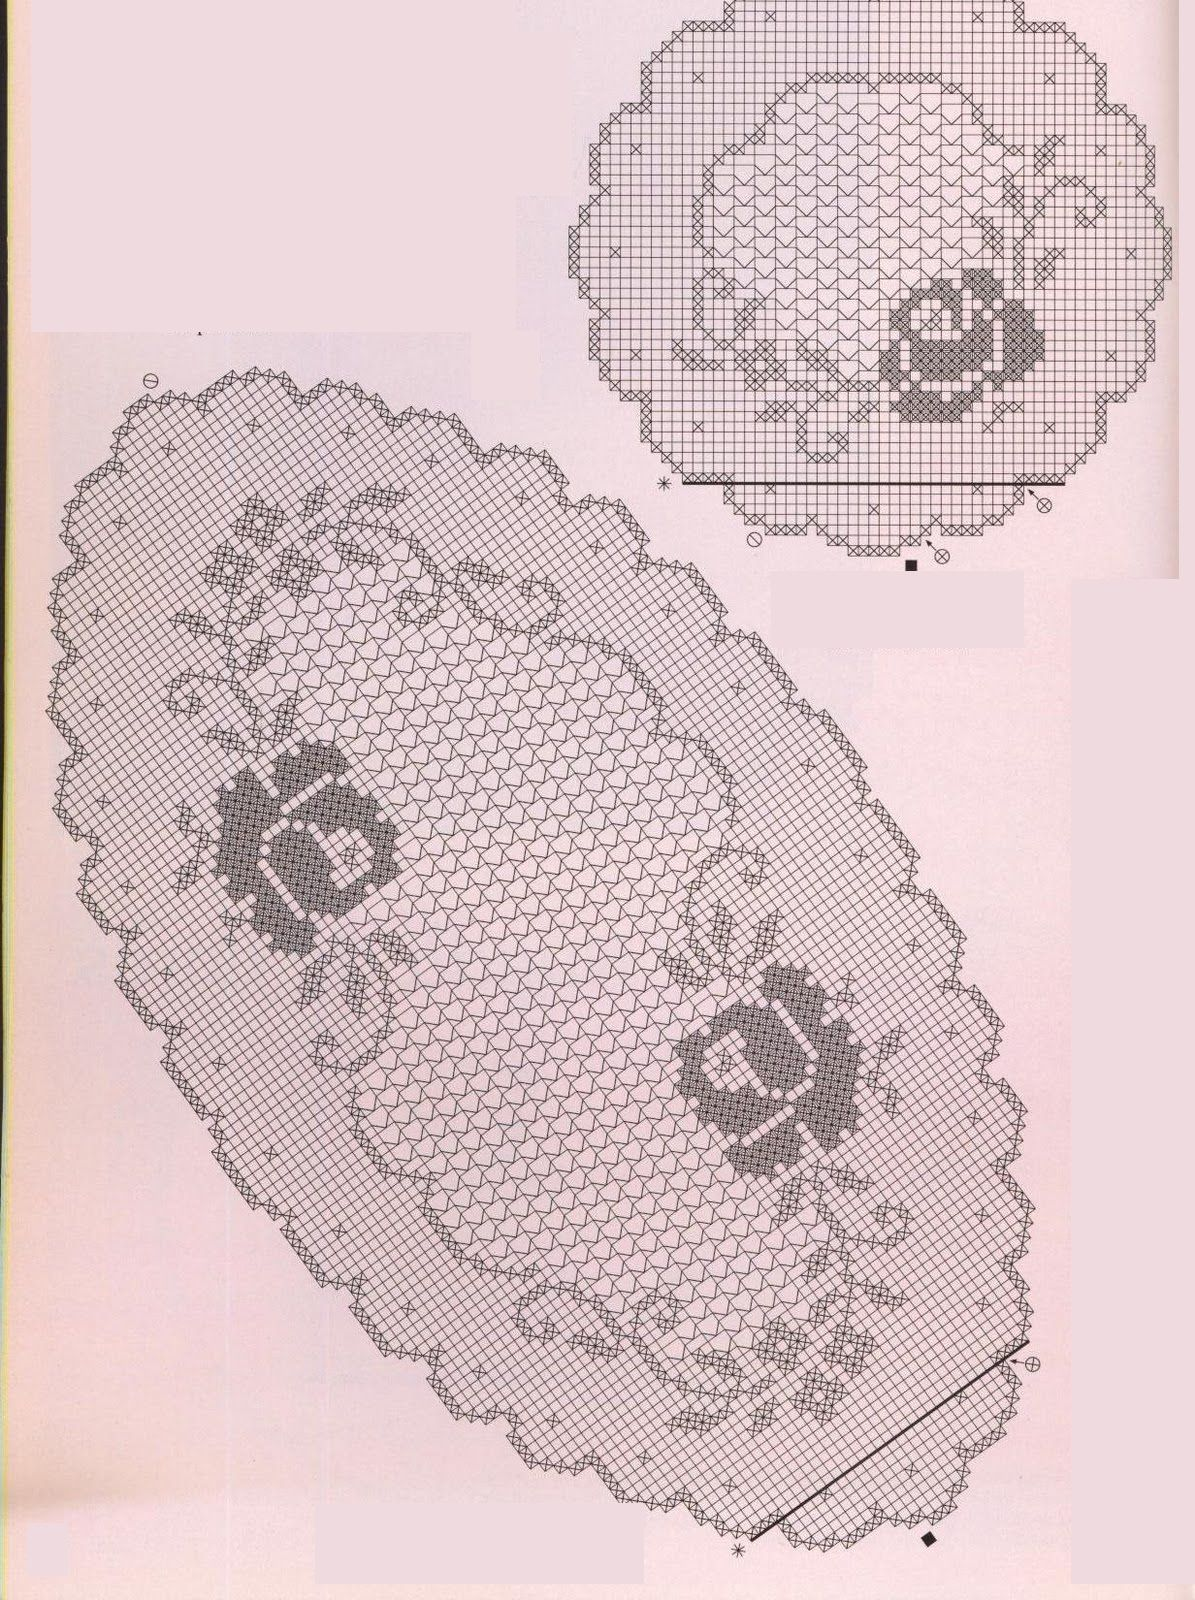 Pin By Linda Sammarco On Uncinetto Pinterest Crochet Filet Oval Doily Diagram Page 2 Of Pair Doilies